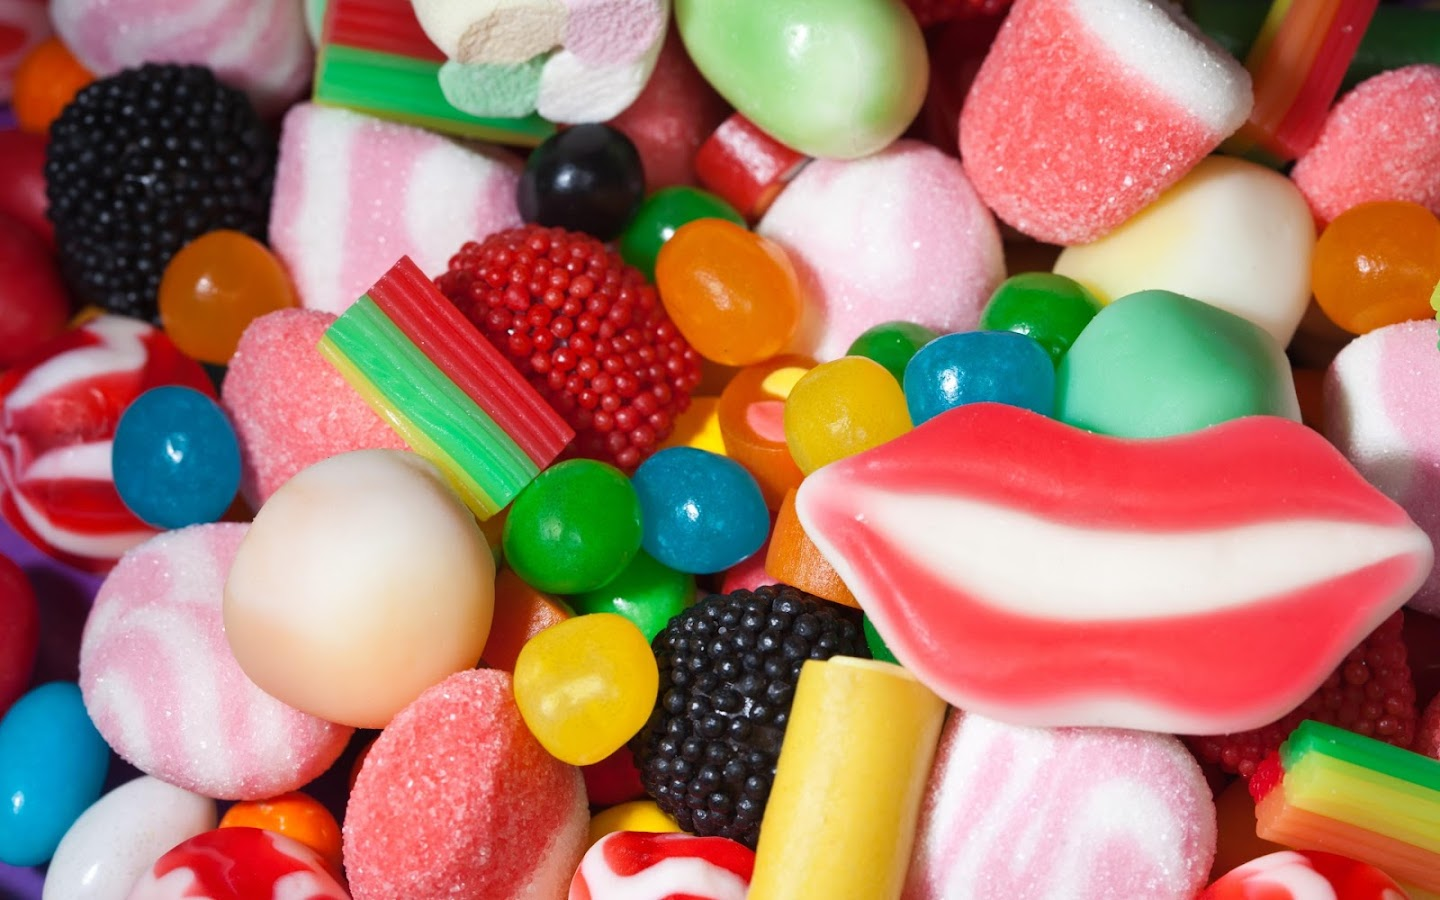 Candy Wallpaper Android Apps on Google Play